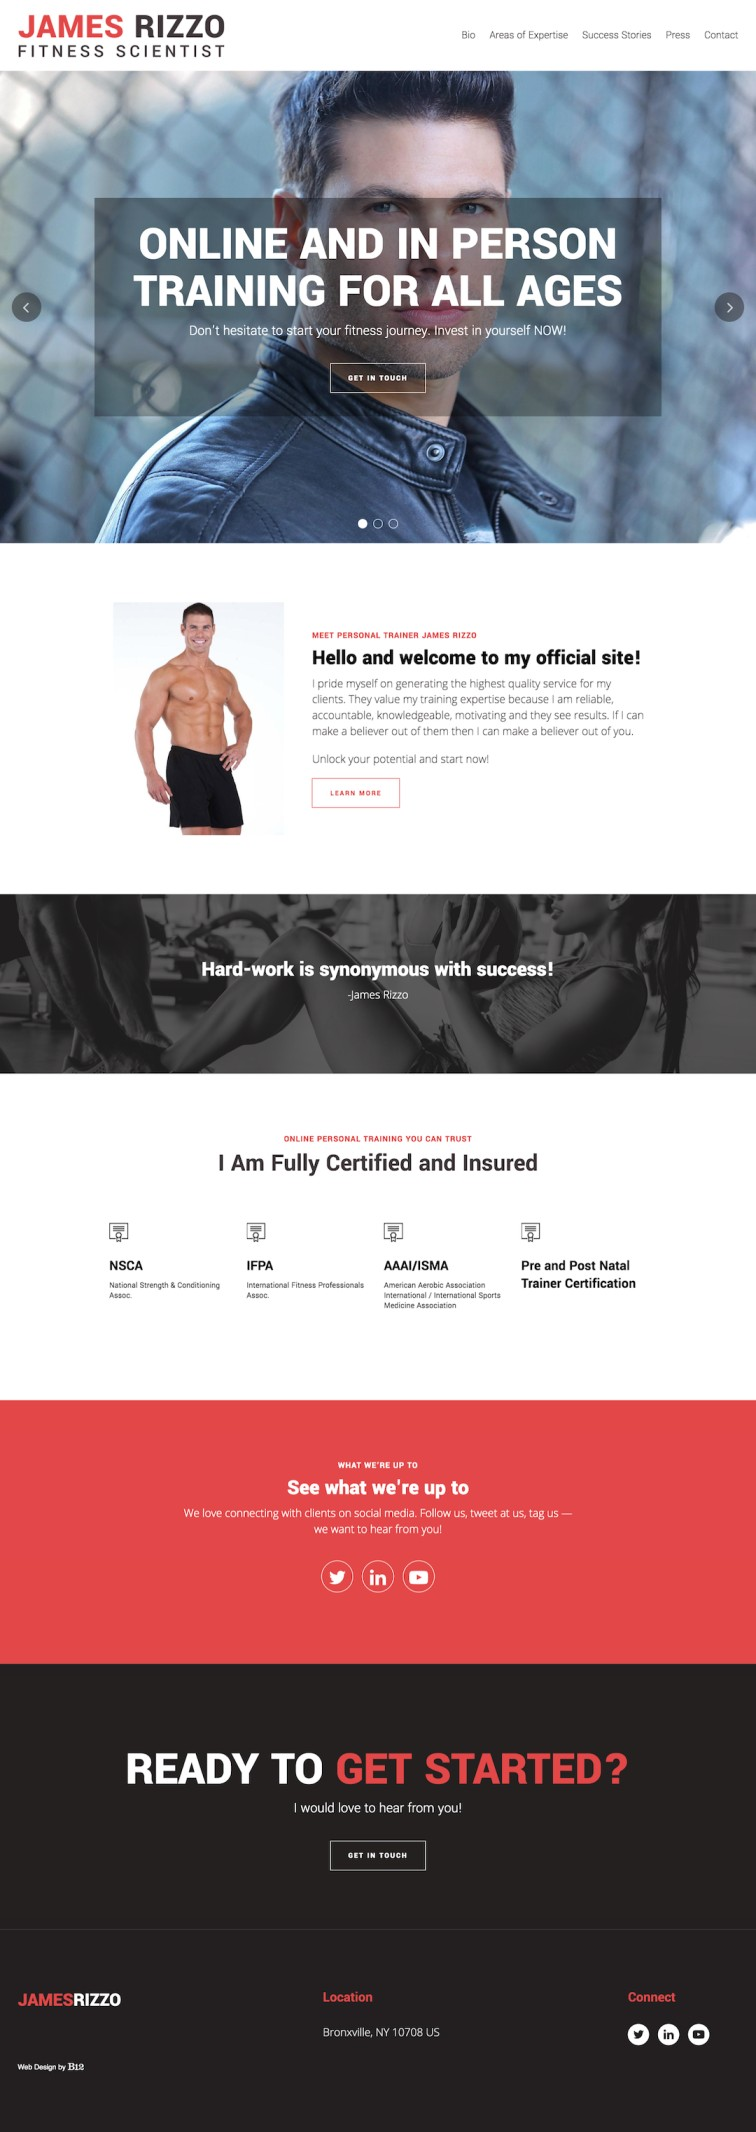 Personal Training by James Rizzo